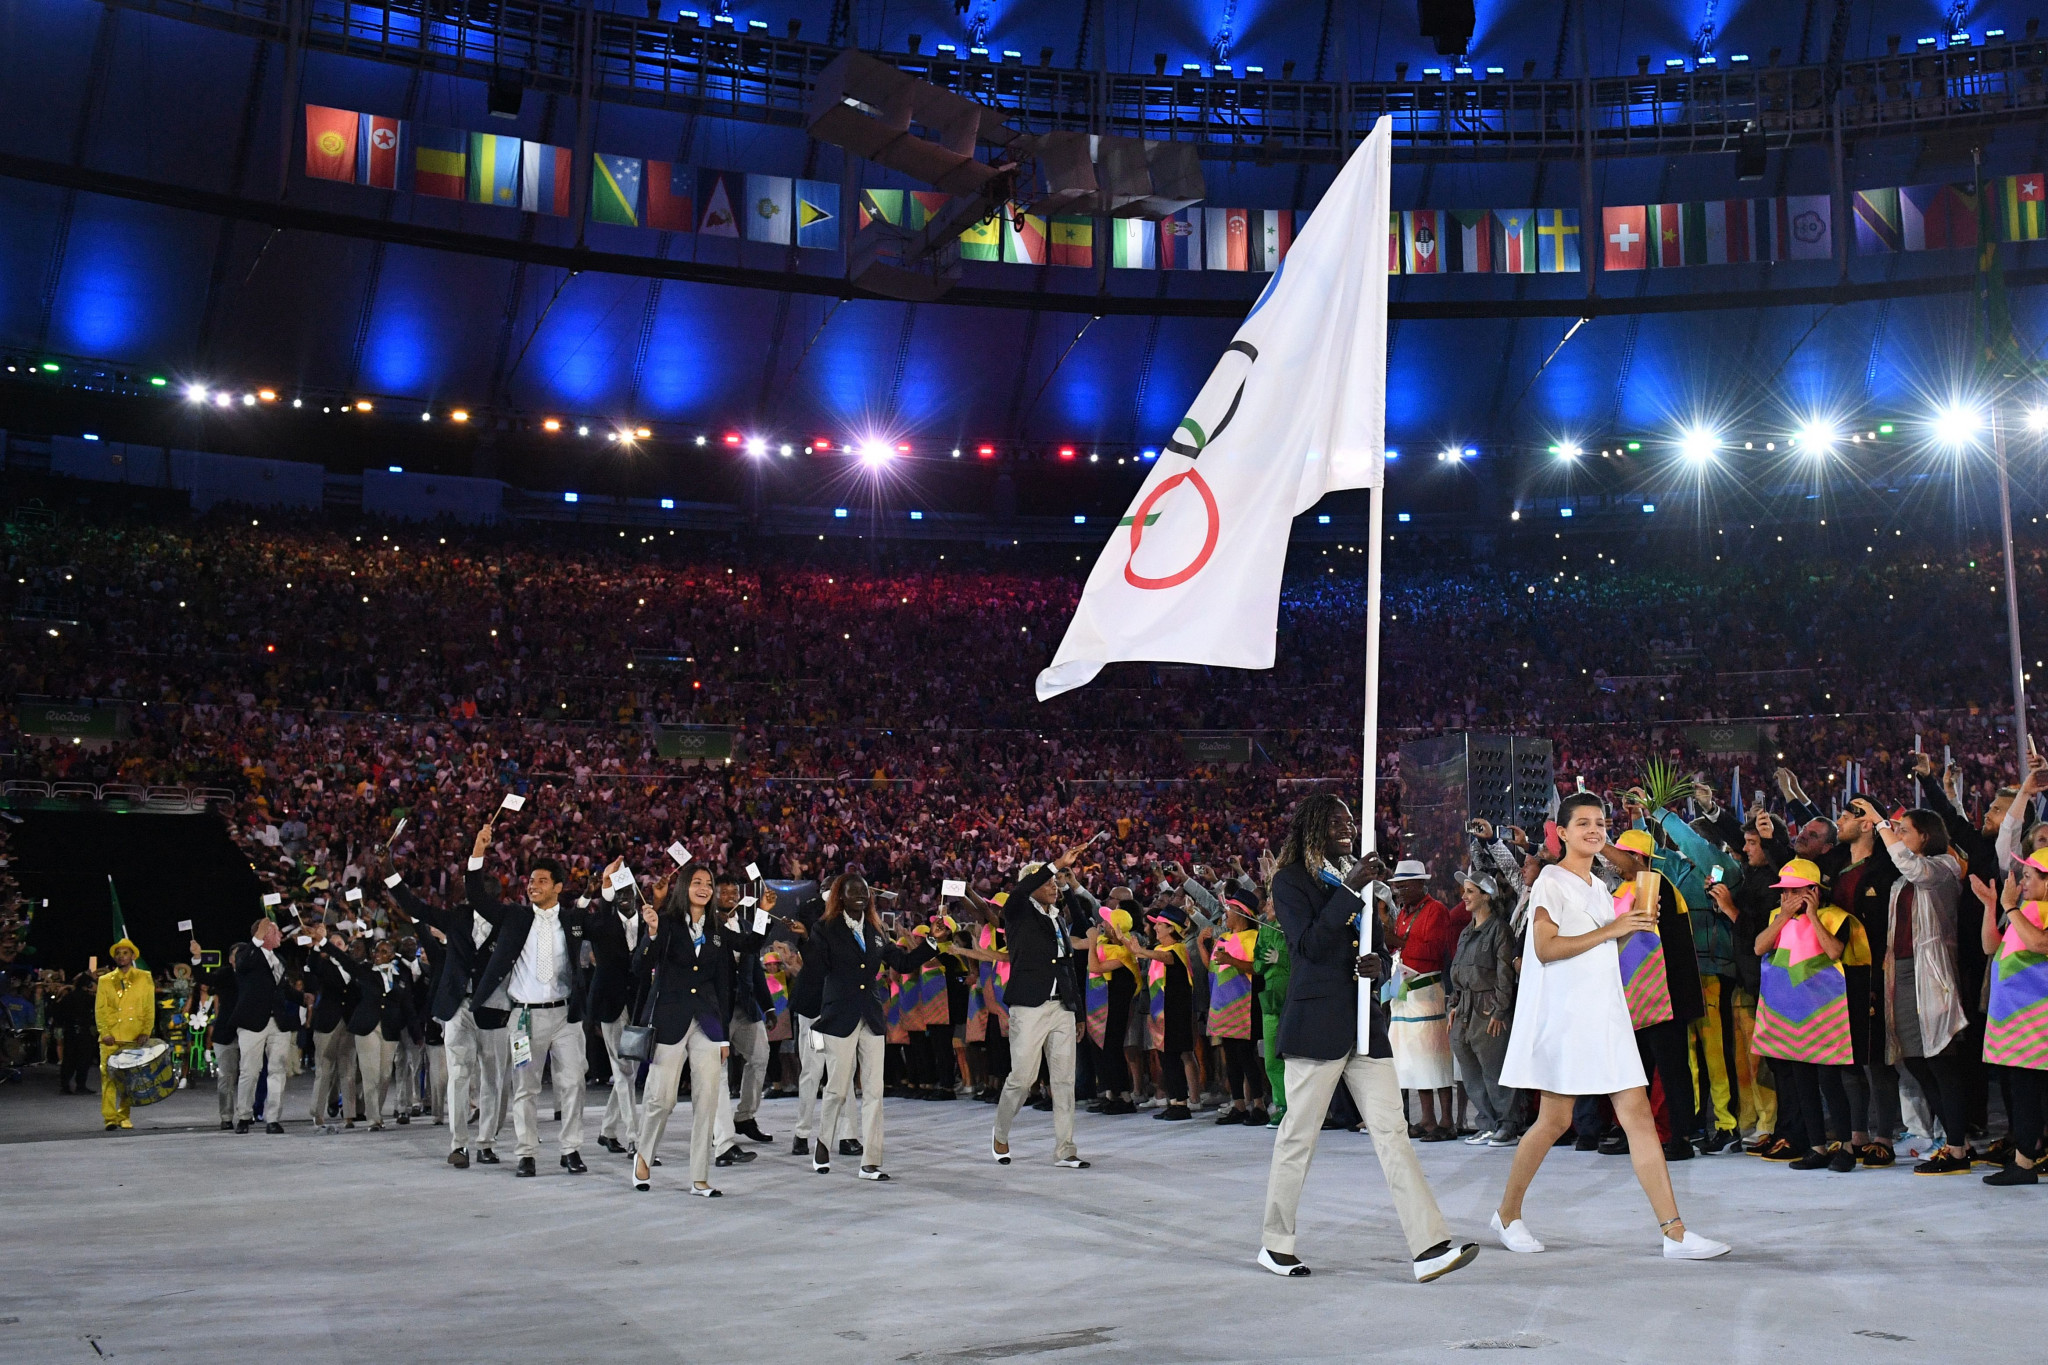 Refugee Olympic Team's flag bearer Rose Nathike Lokonyen leads the delegation during the opening ceremony of the Rio 2016 Olympic Games at the Maracana stadium ©Getty Images